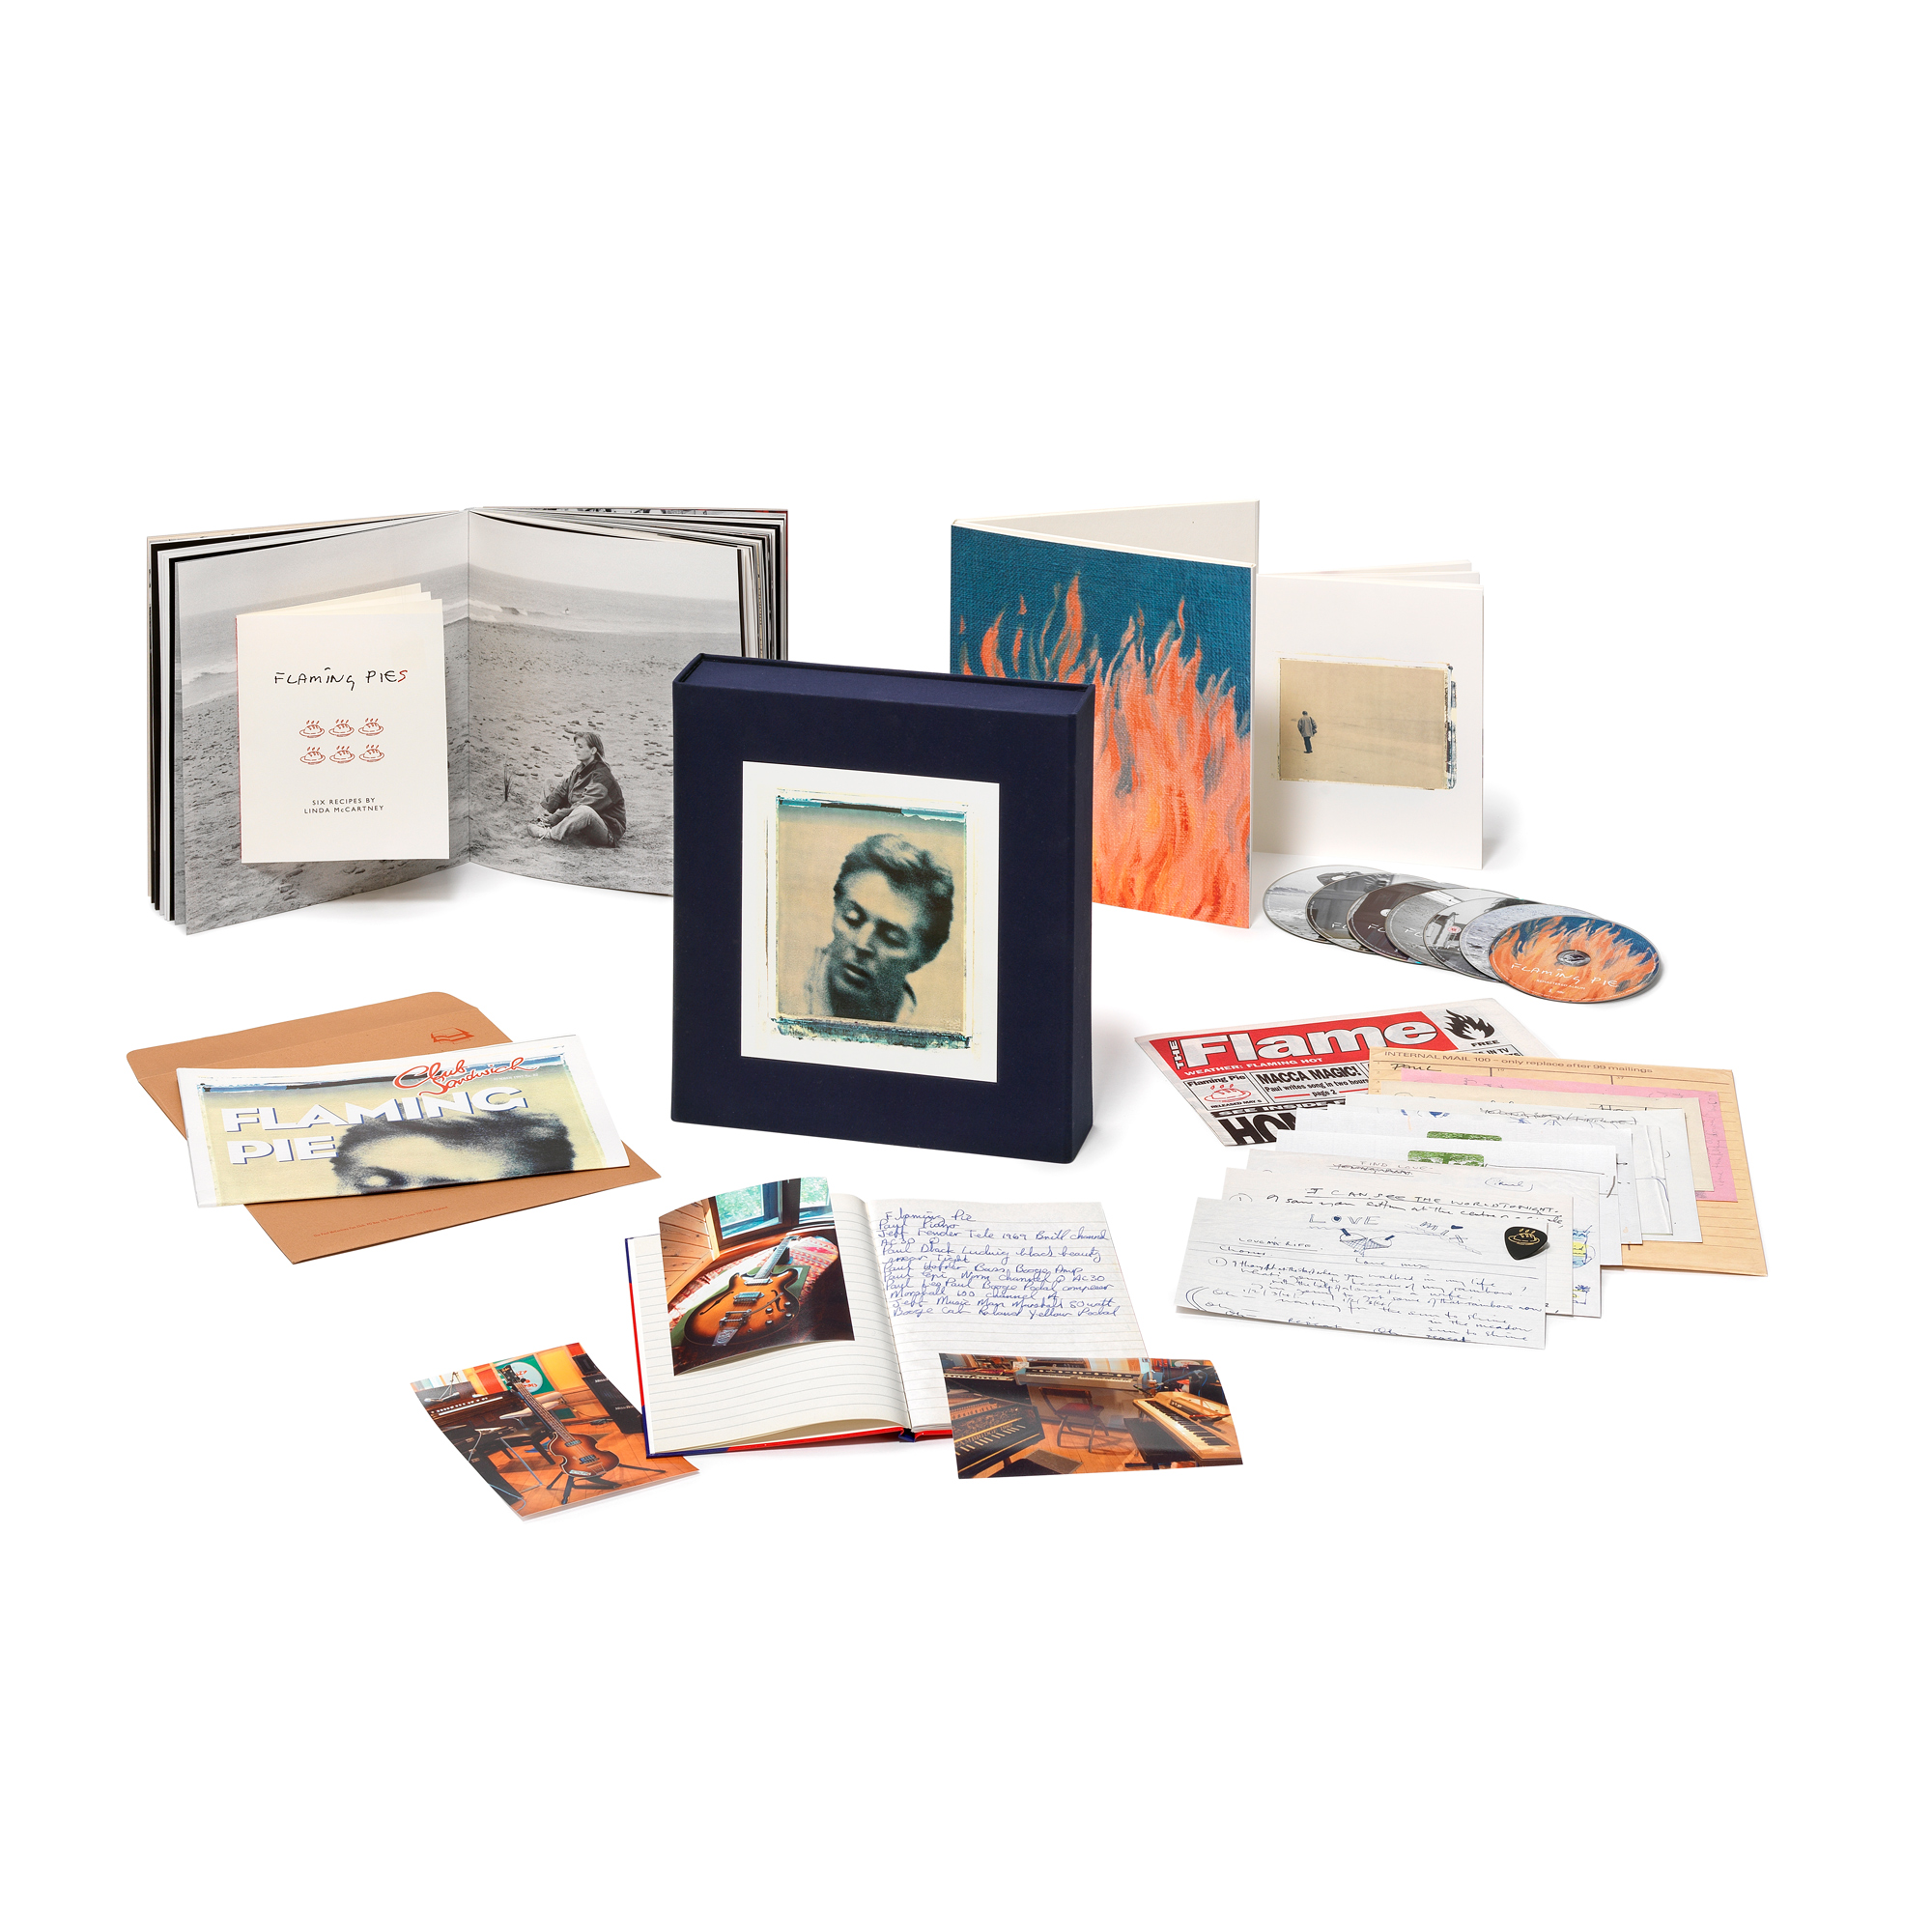 Paul McCartney Flaming Pie Deluxe Numbered, Limited Edition 5CD, 2DVD & Book Box Set